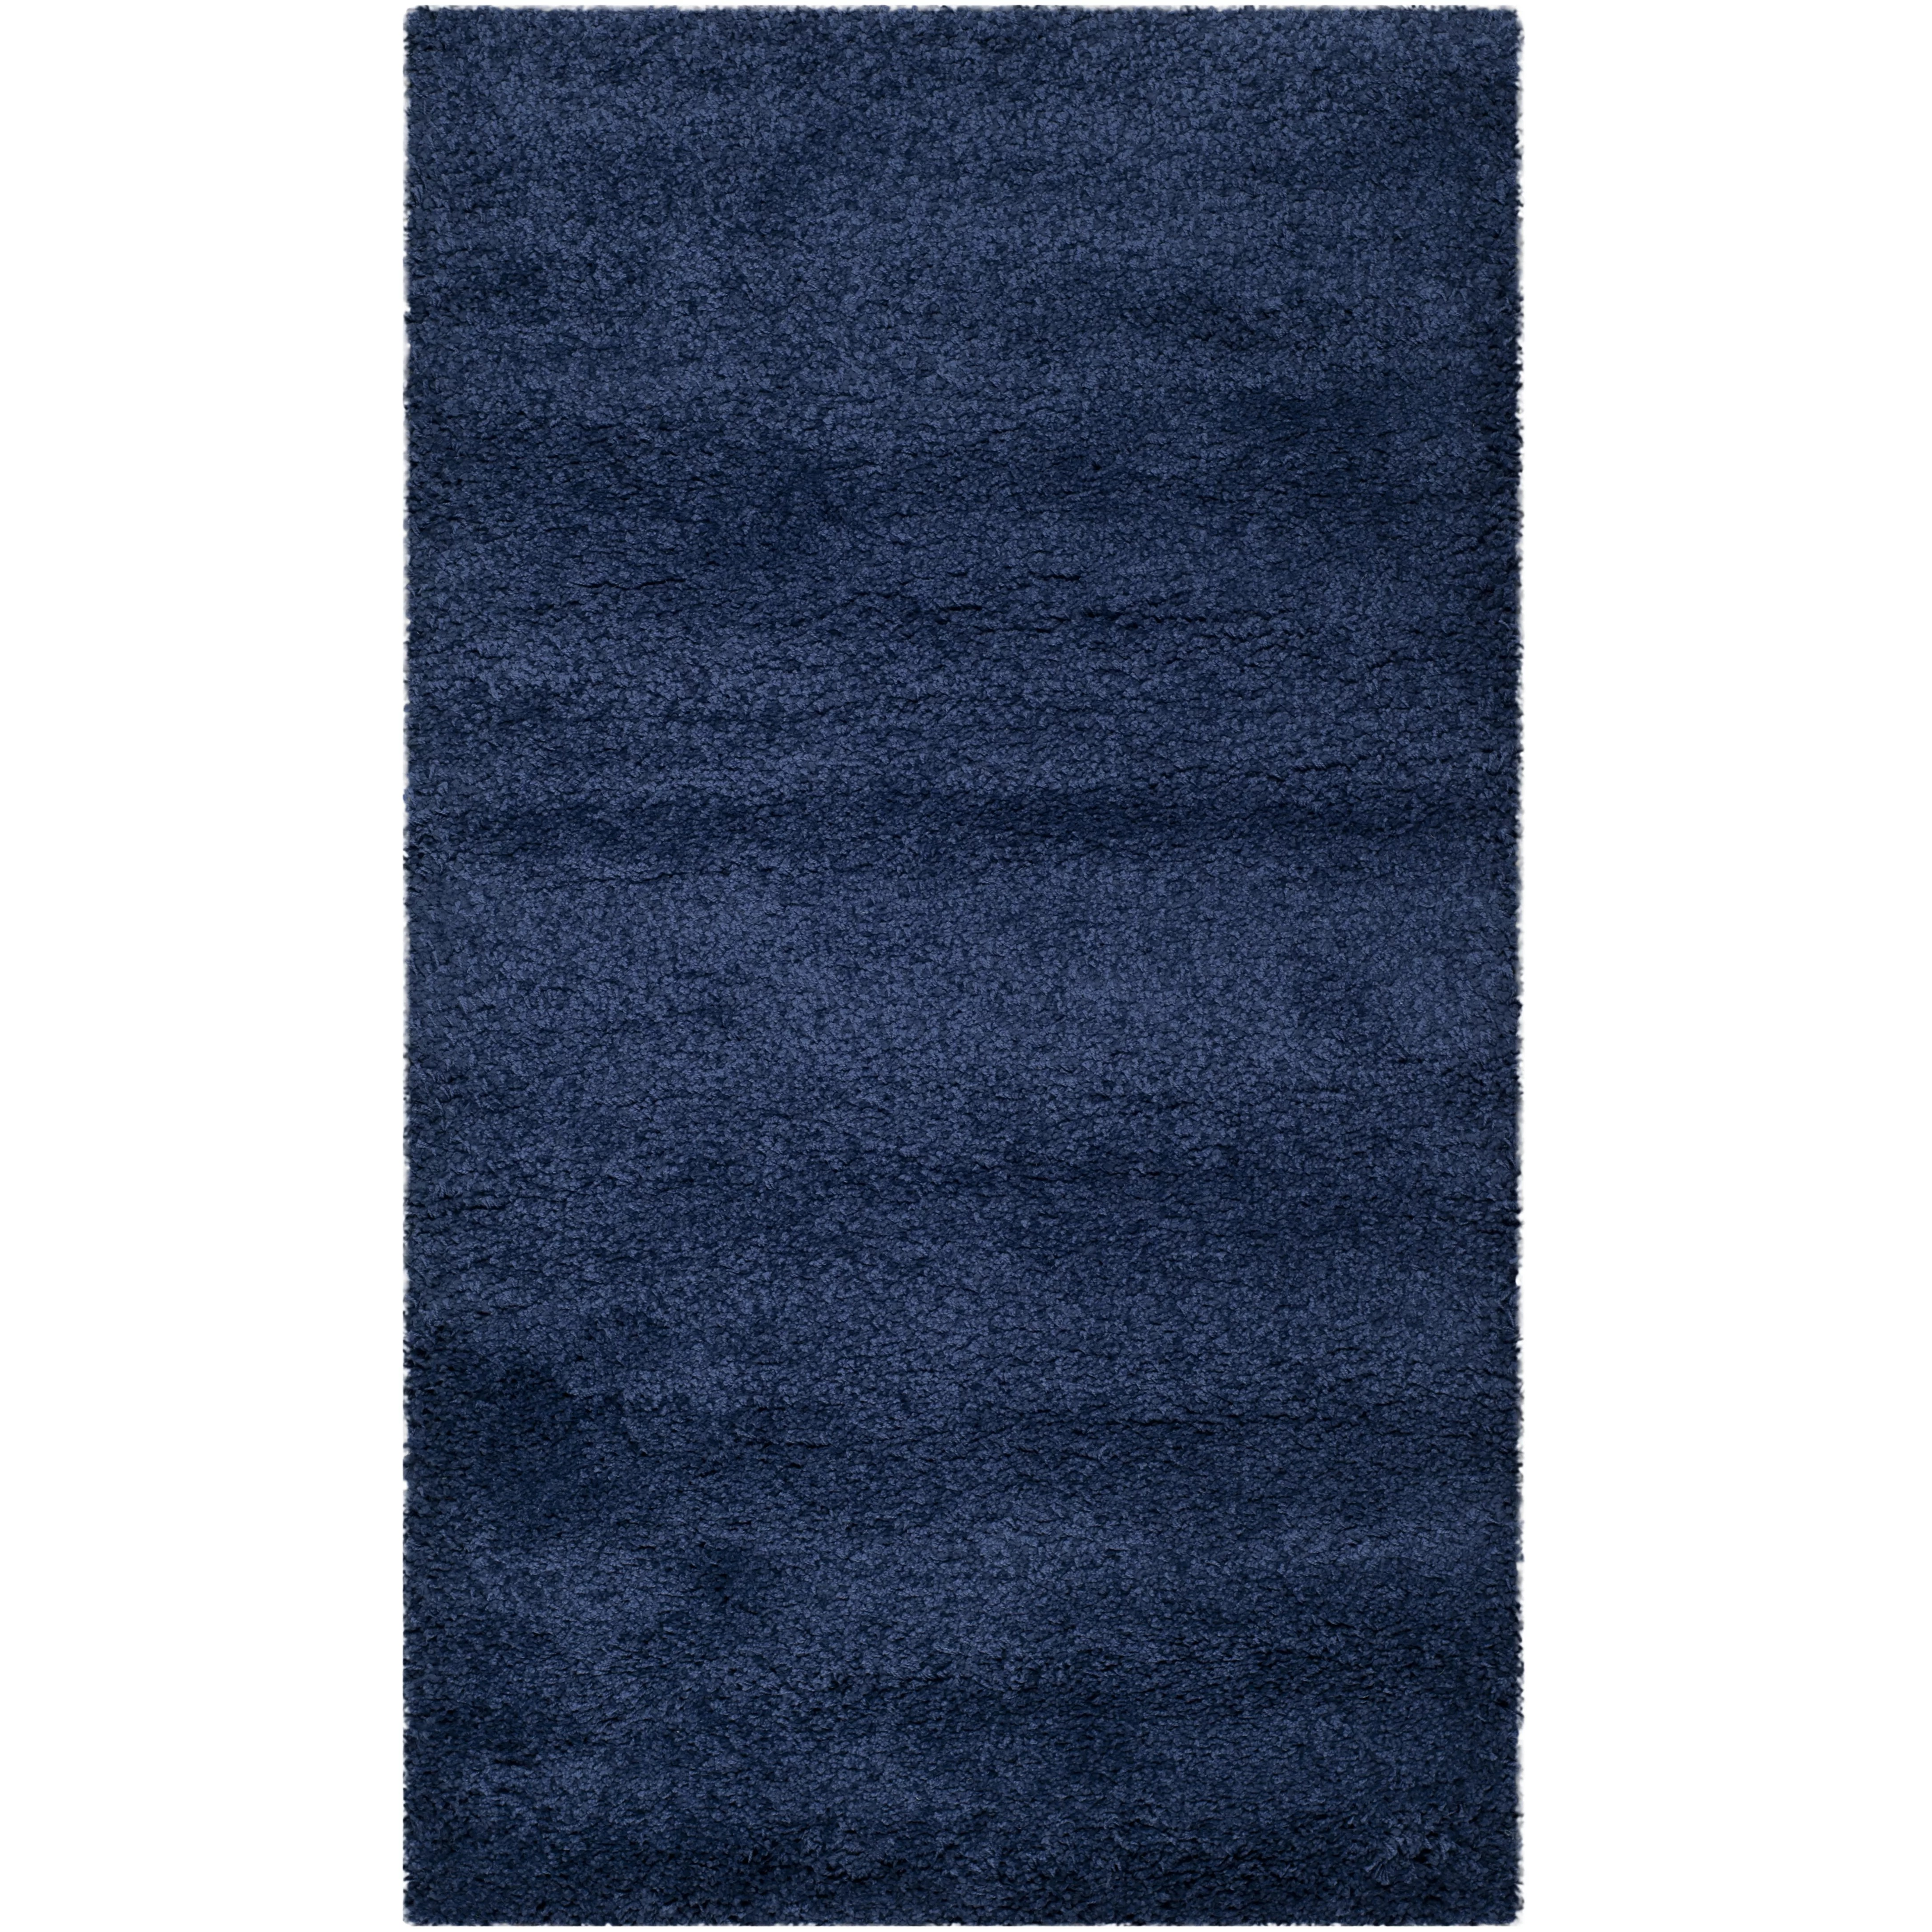 Safavieh Milan Shag Navy Blue Area Rug  Reviews  Wayfair